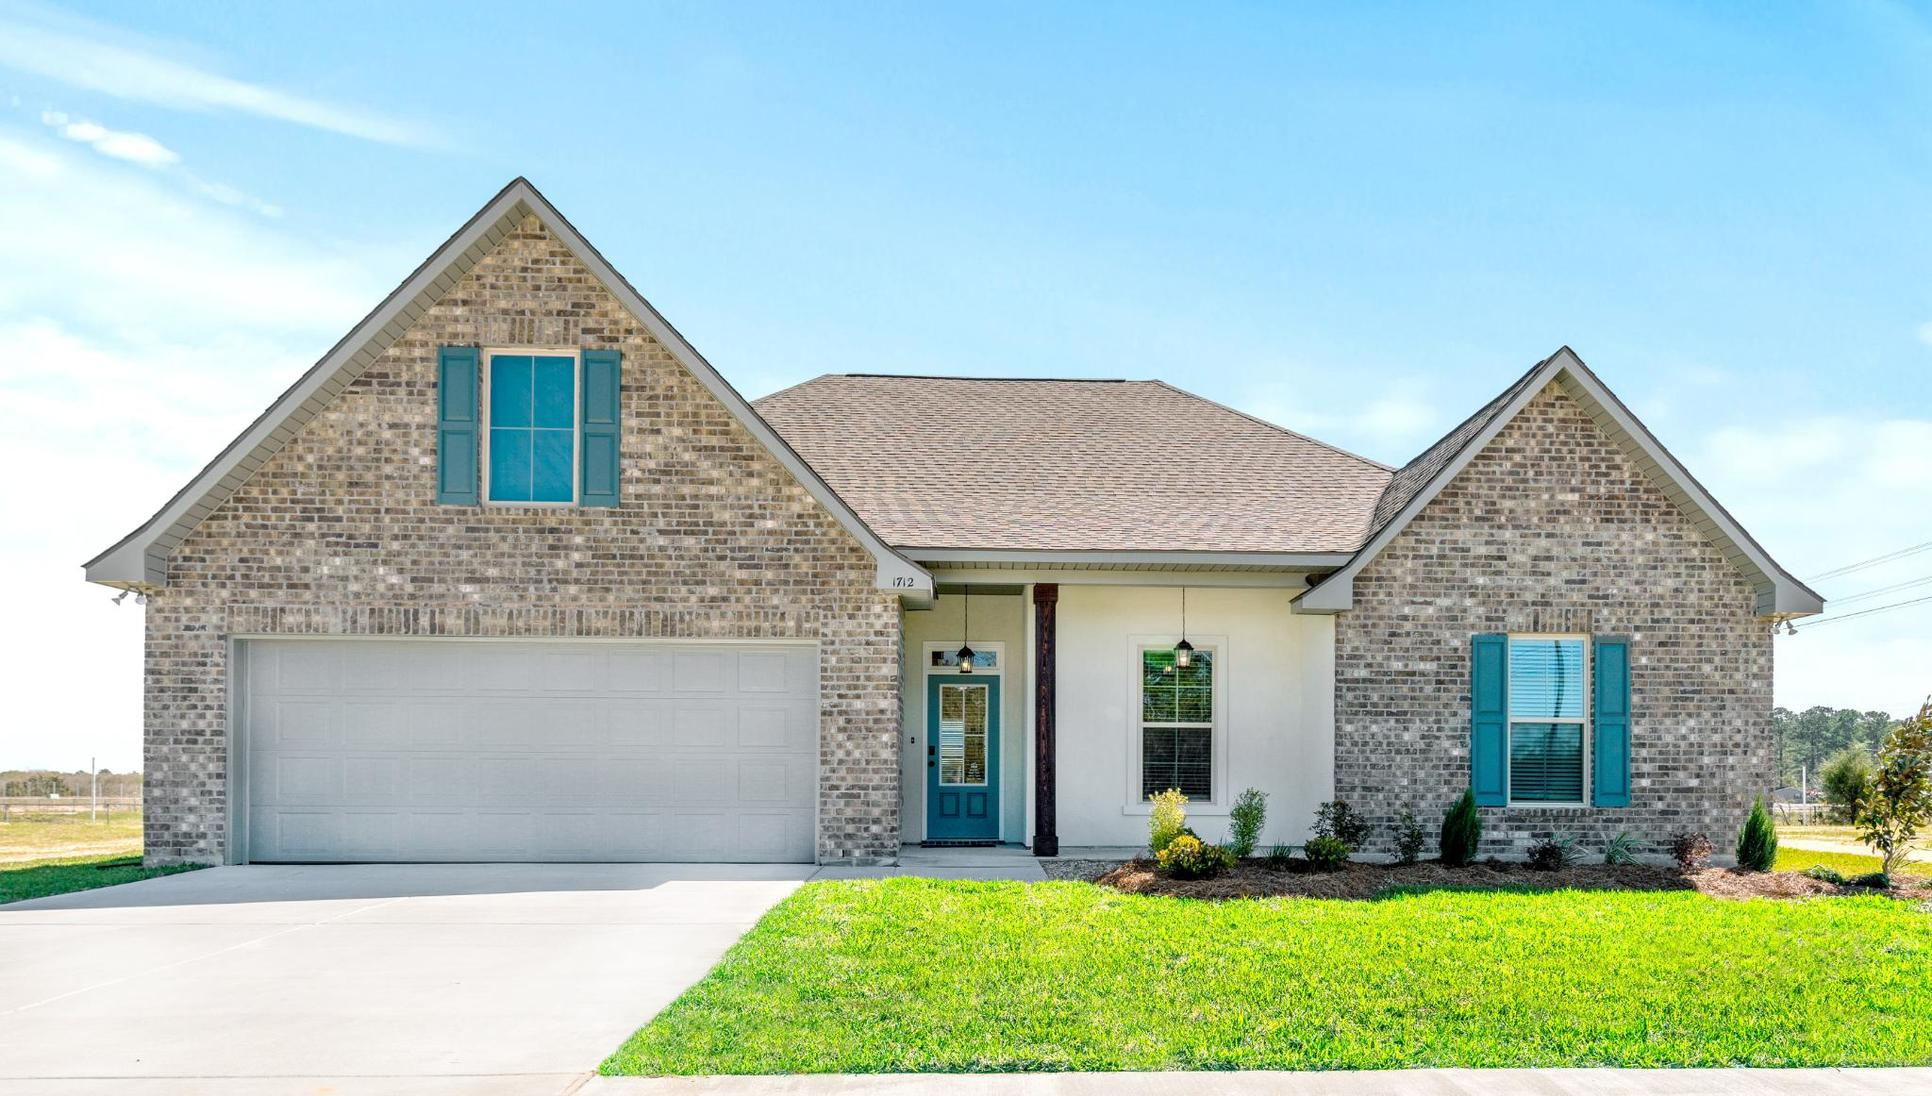 new home community in lake charles la by dsld homes:Porter's Cove Model Home Exterior - DSLD Homes